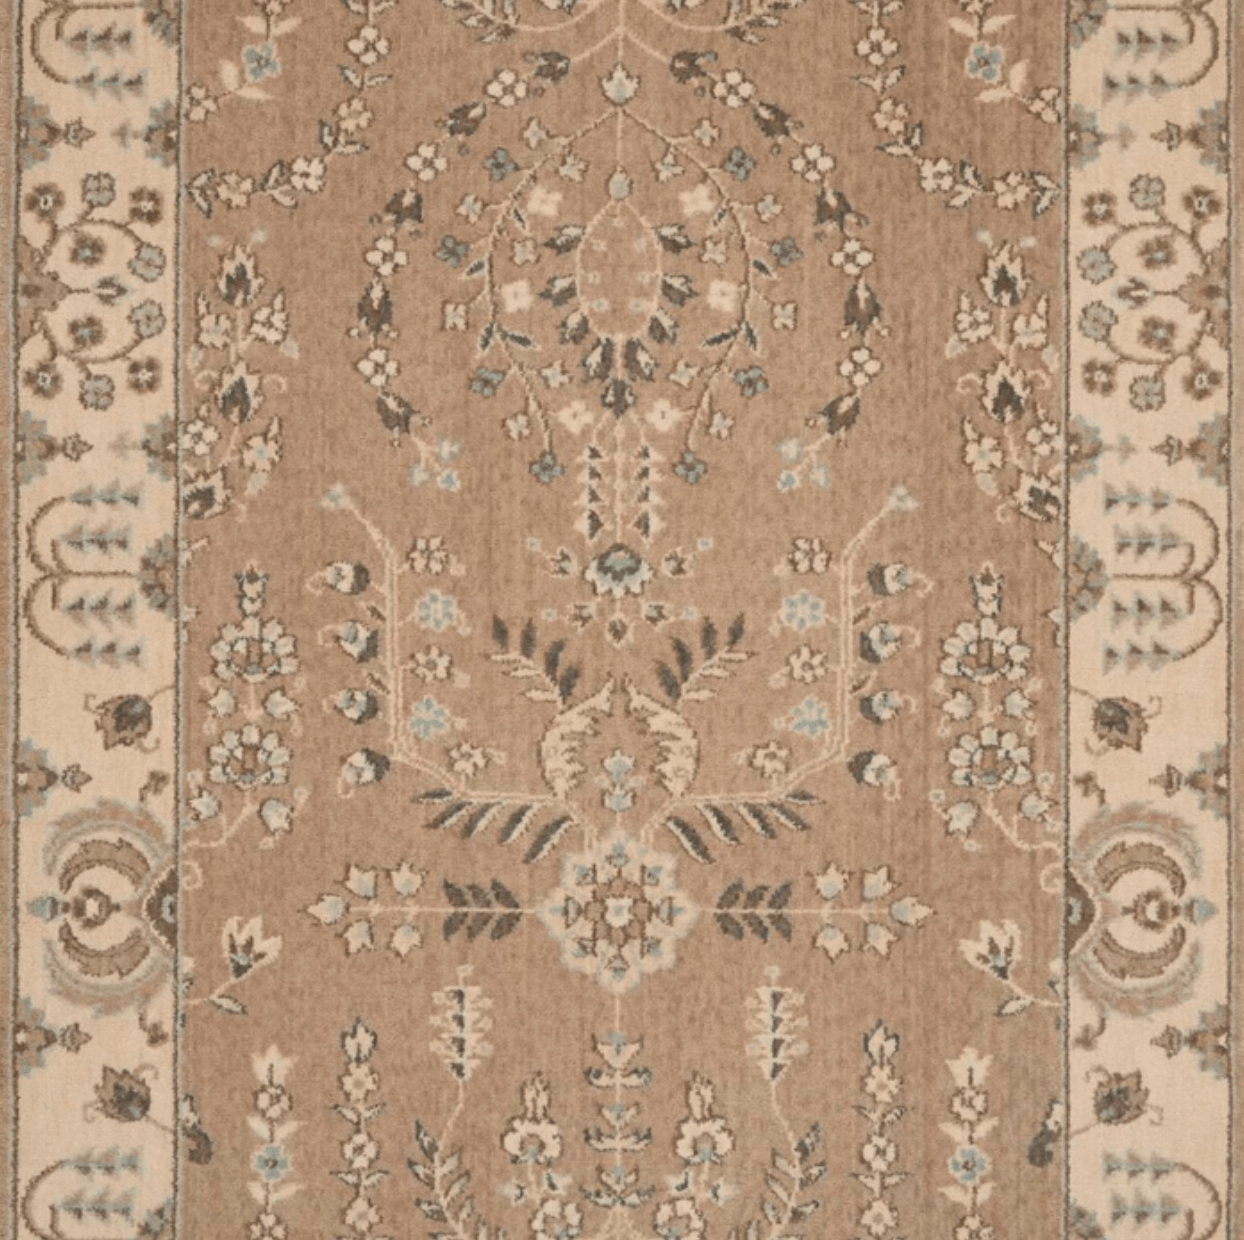 Grand Parterre Sarouk Border Stair Runner runner Shop Tapis Hazelnut 41""